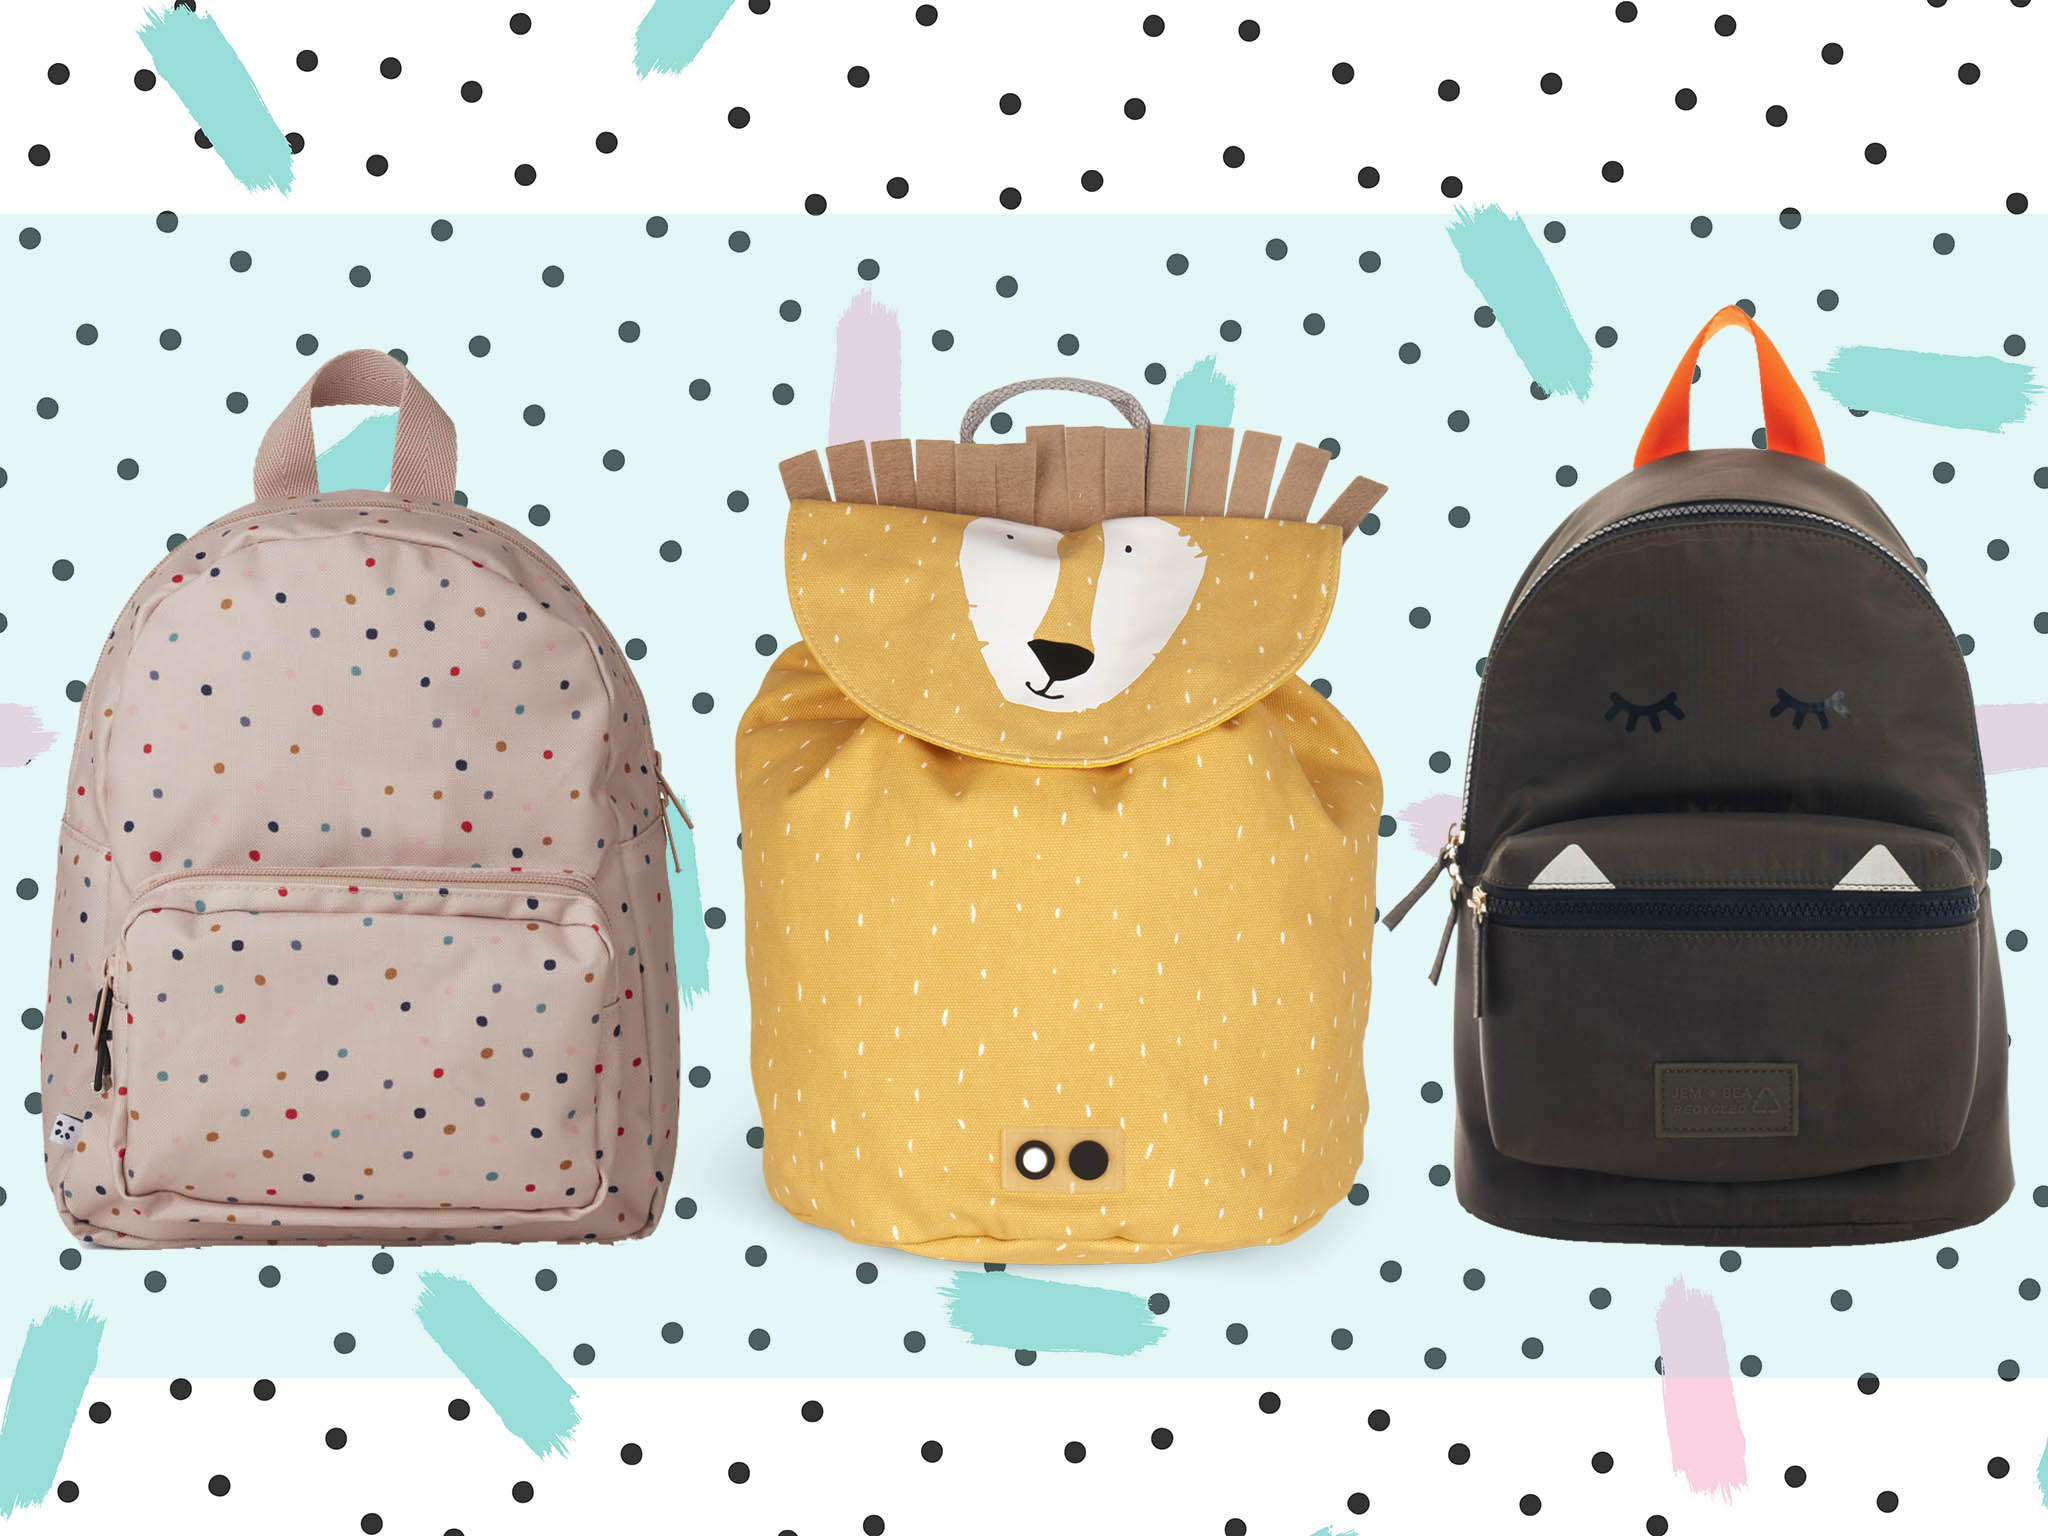 Best school backpacks 2020: Bags for all ages, from primary to ...